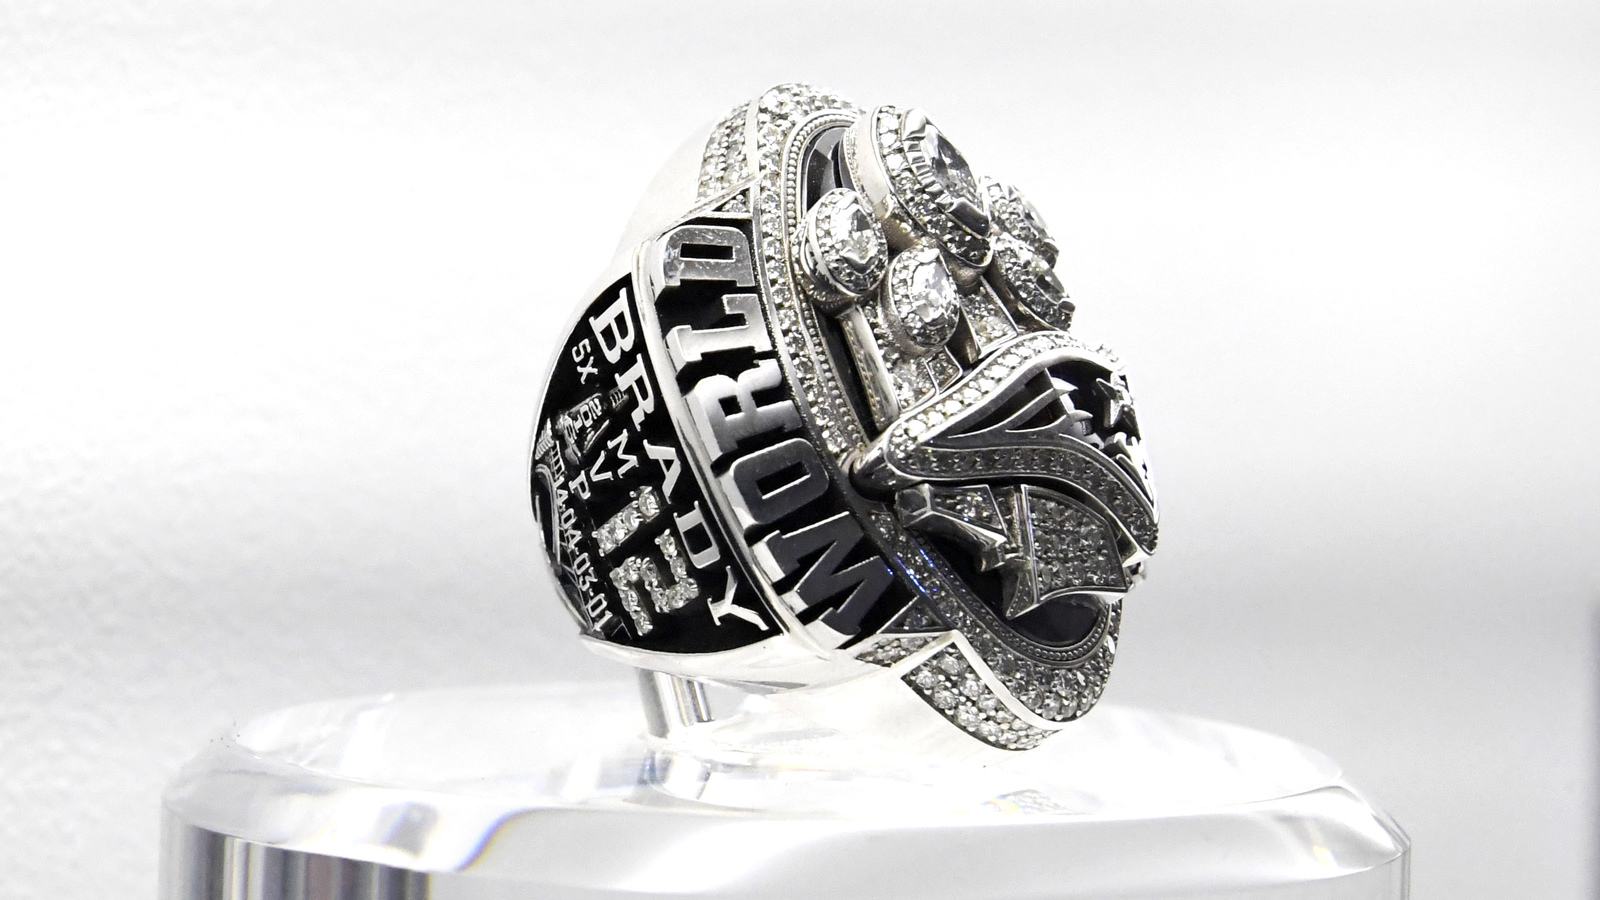 on houston state football bearkatsfb undefeated segler sam status southland ring twitter conference rings championship coach by goldstandard designed